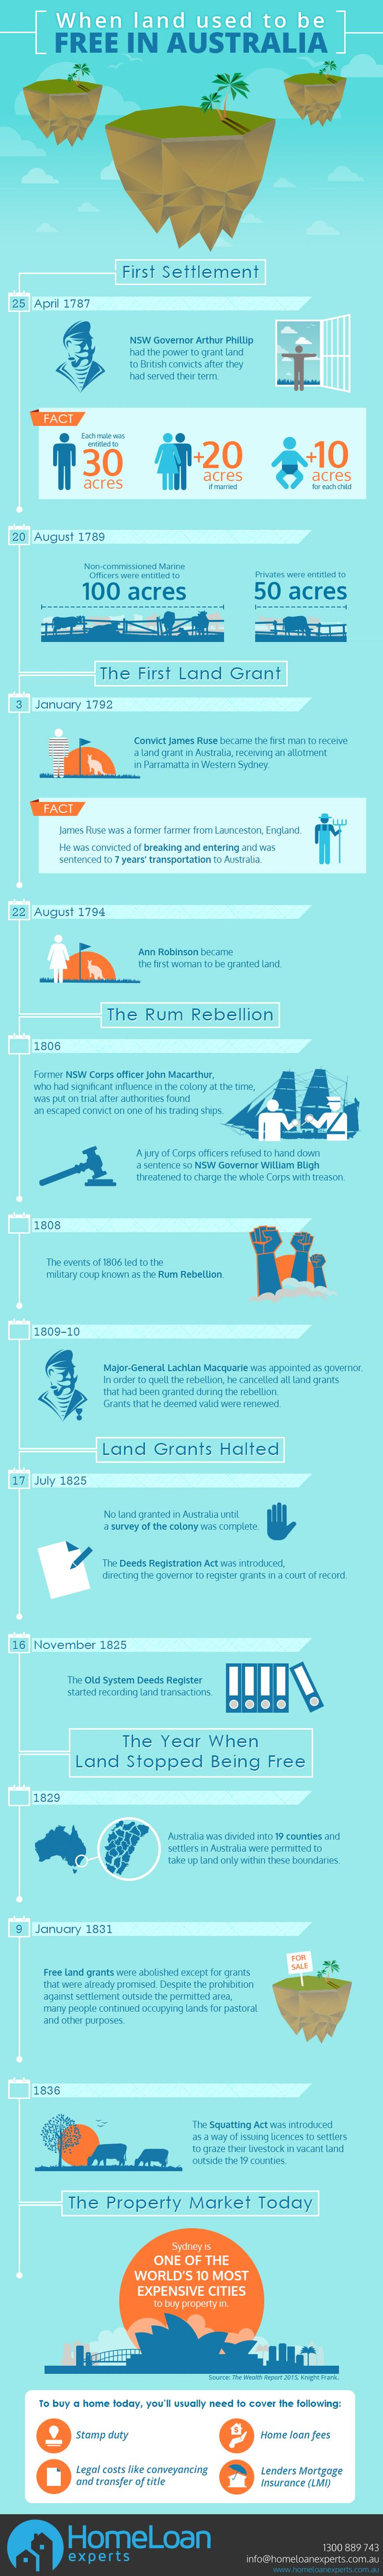 Fact: In 1787, Australians were given acres of land for free by the government.  Read more about the time when land used to be free in #Australia https://www.homeloanexperts.com.au/history-land-grants-australia/